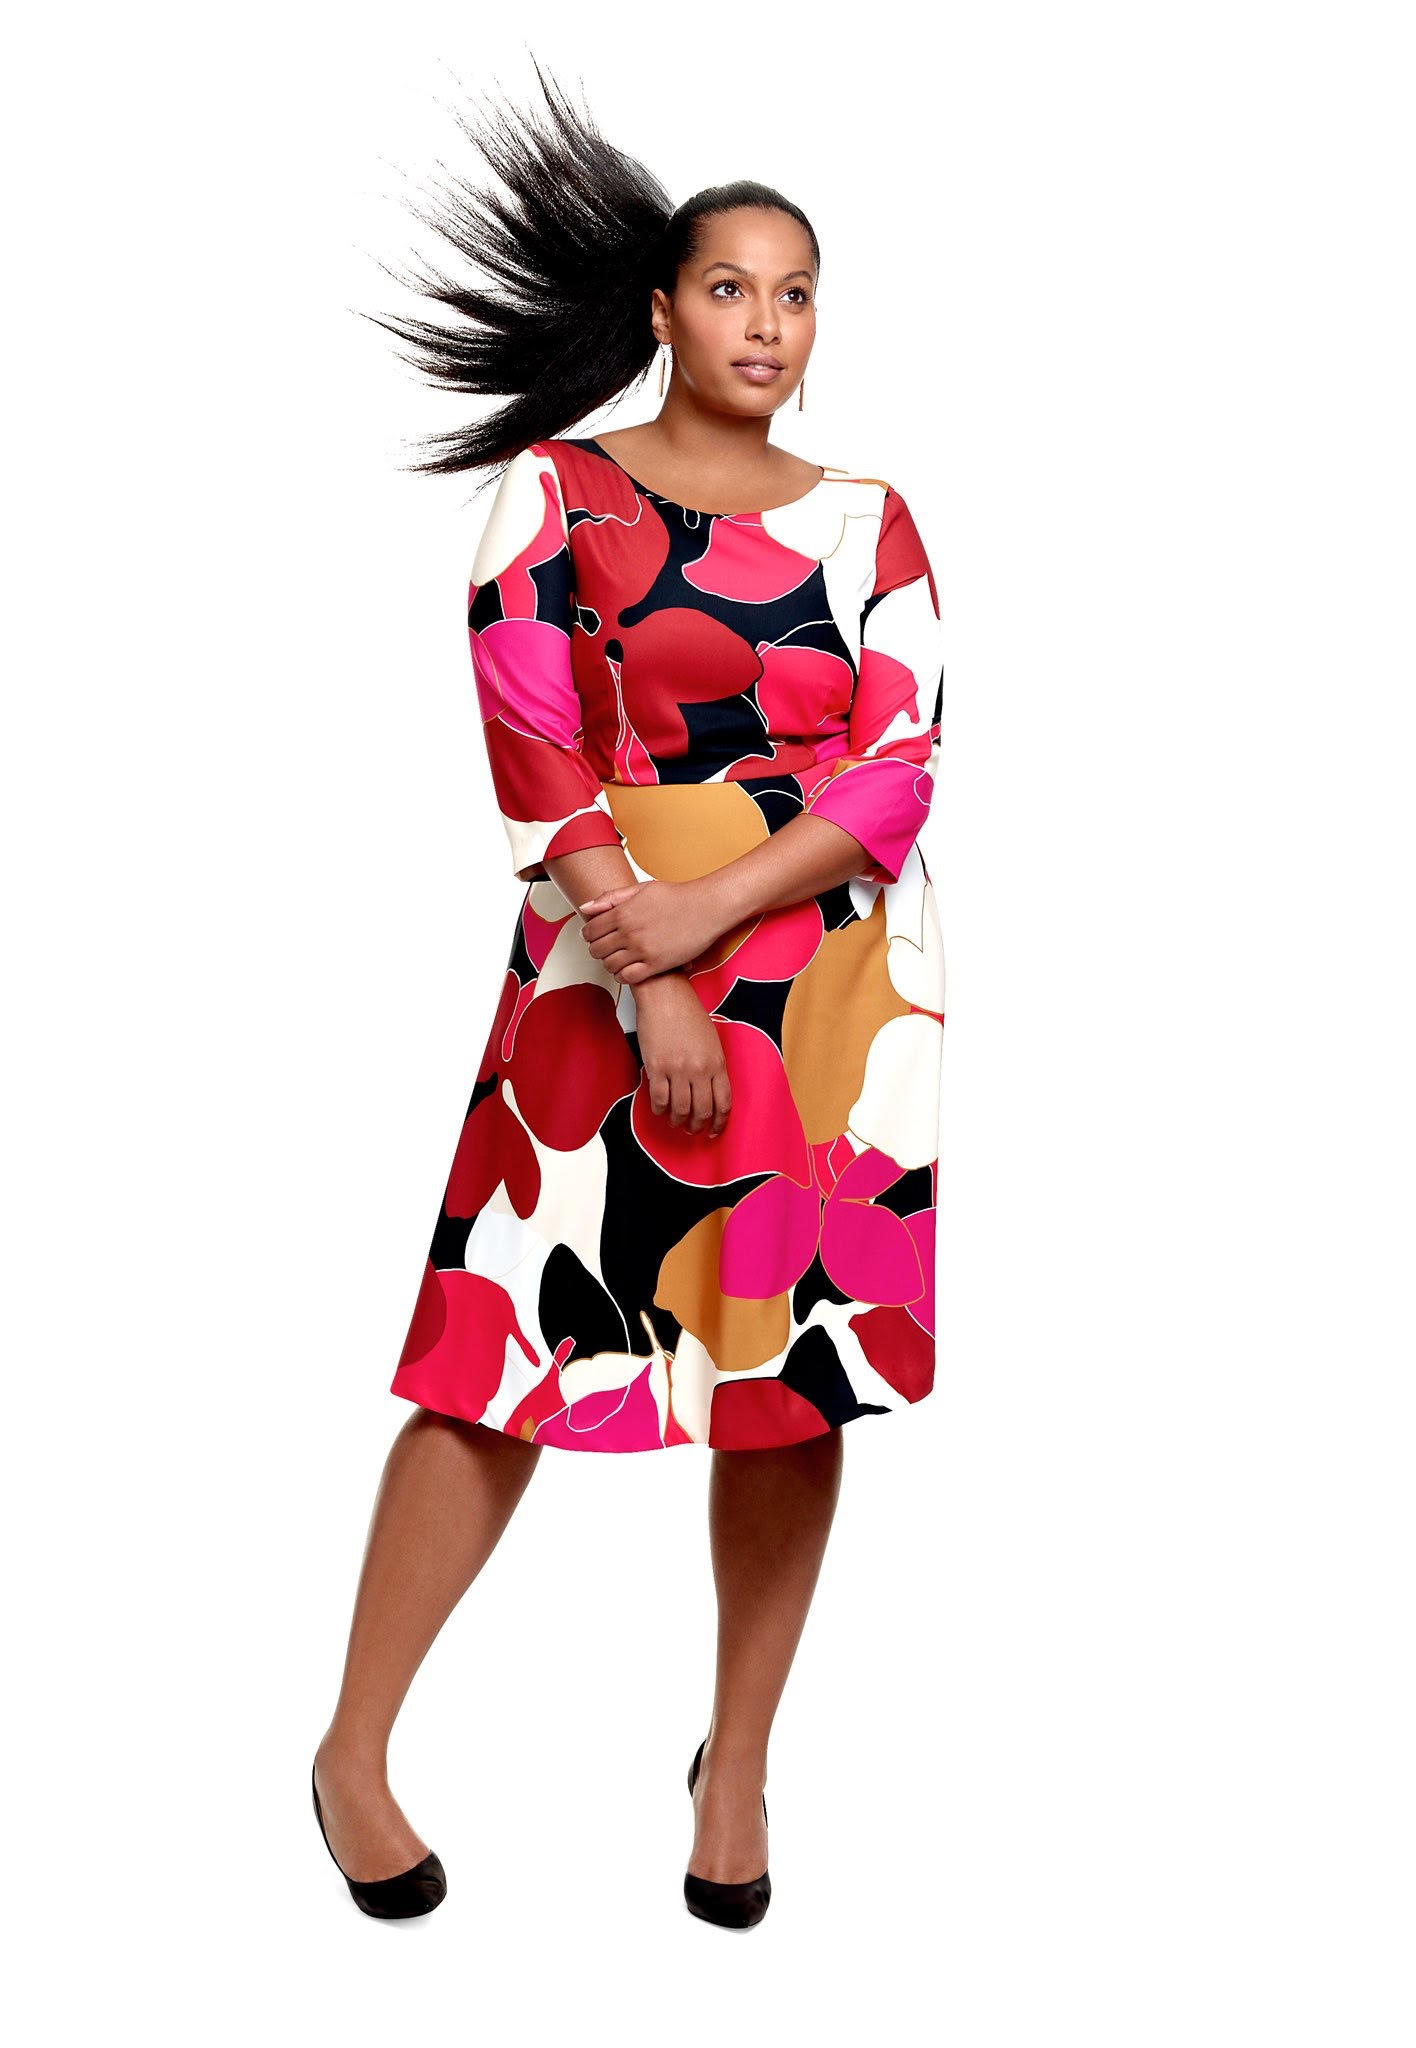 JCPenney Tracee Ellis Ross Holiday Collection Includes Plus ...